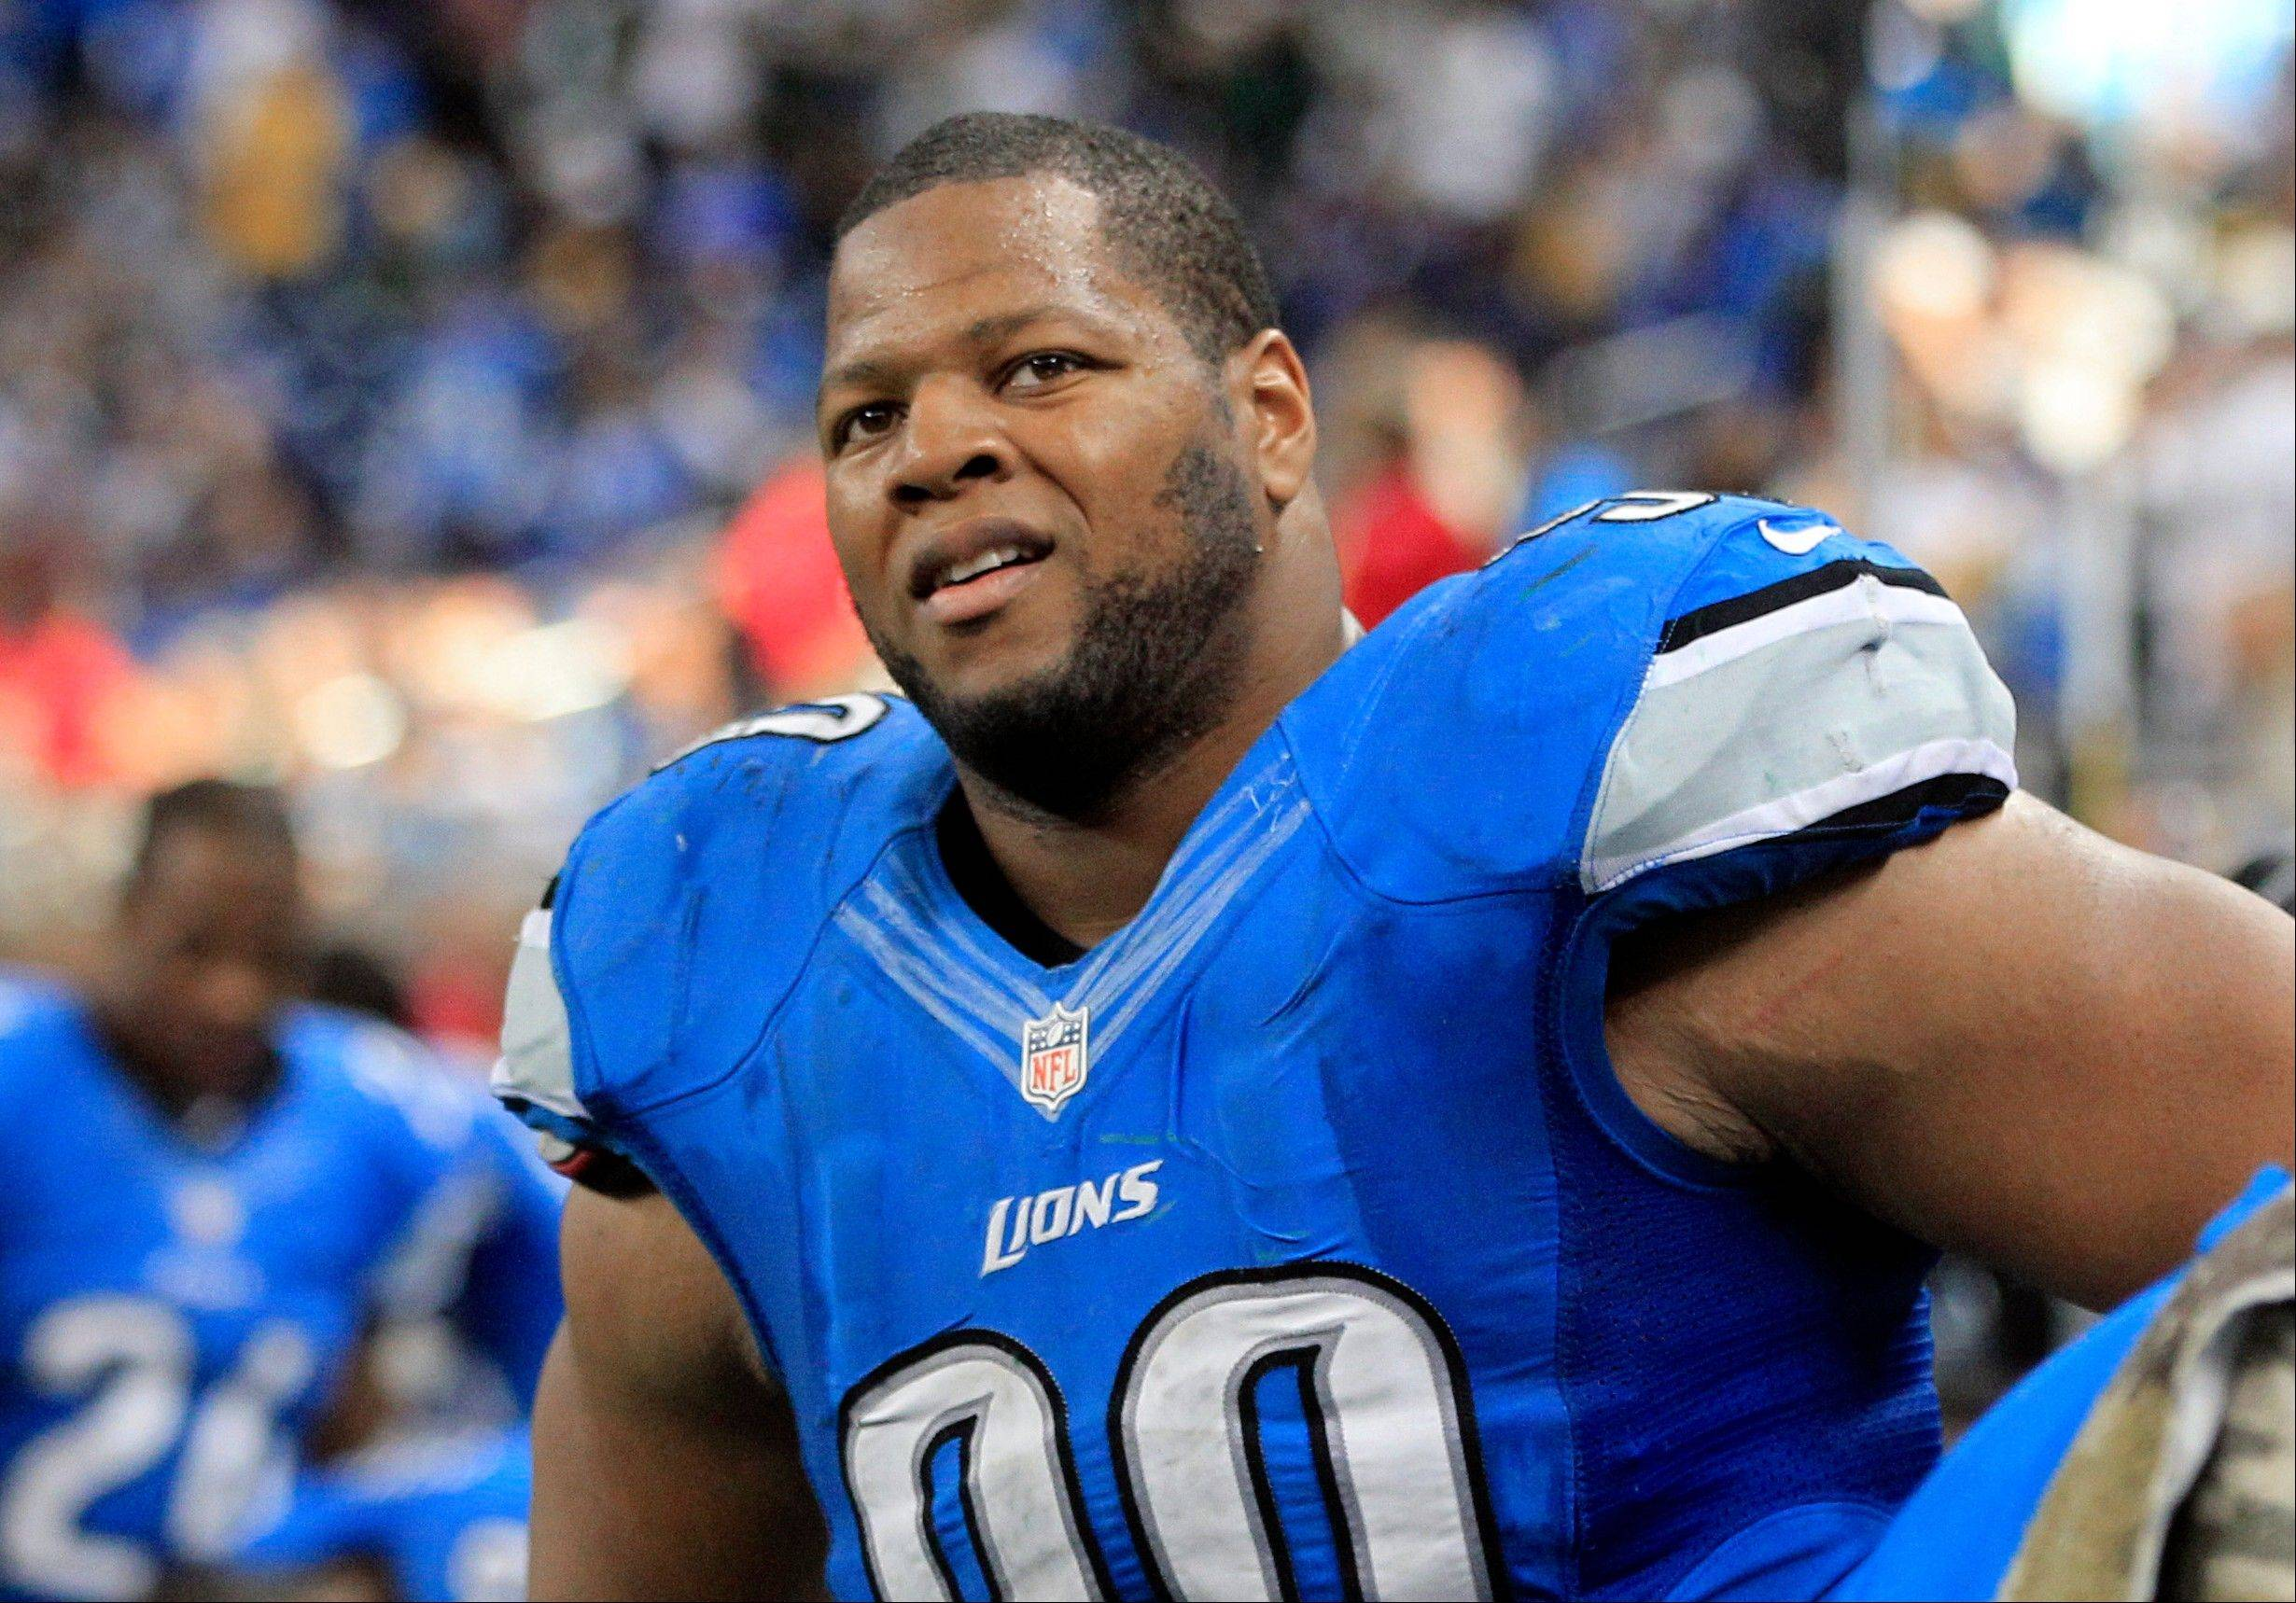 Detroit Lions defensive tackle Ndamukong Suh was fined $30,000 by the NFL on Wednesday, but says he didn't kick Houston Texans quarterback Matt Schaub on purpose.